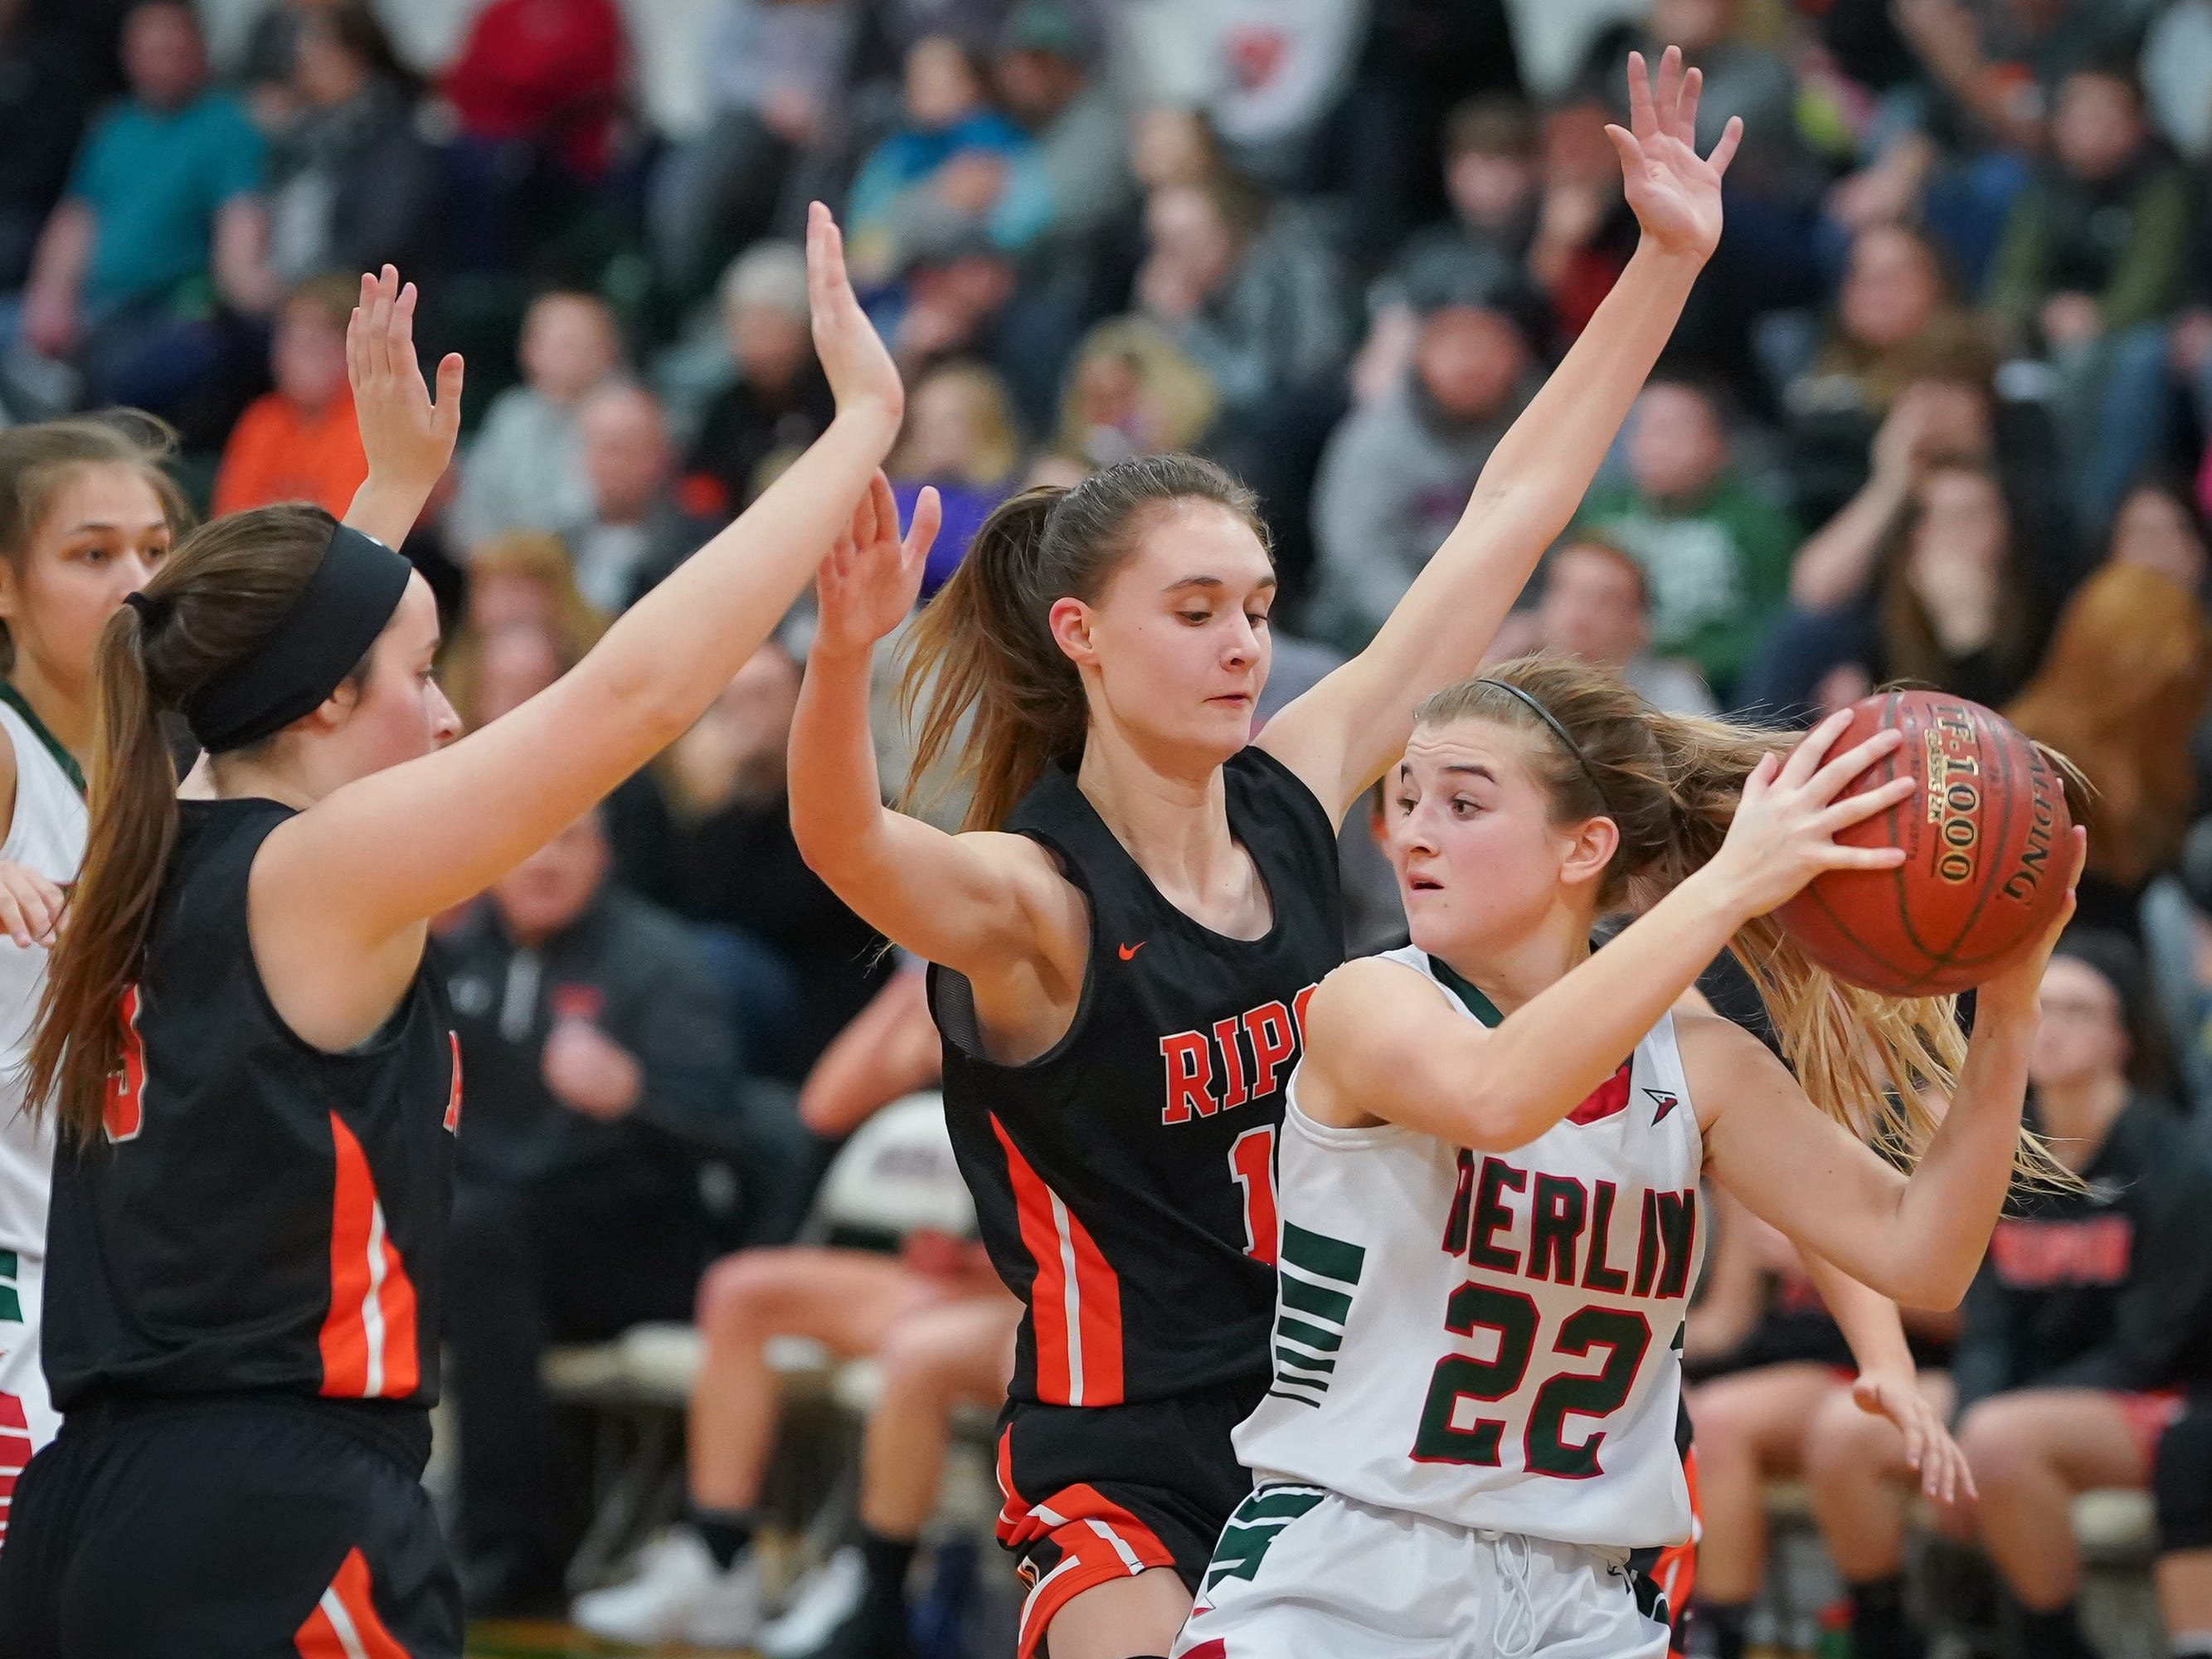 Mari Beltran (22) of Berlin tries to pass the ball while covered by Alexa Miller (11) of Ripon. The Berlin Indians hosted the Ripon Tigers in an East Central Conference girls basketball matchup Friday evening, December 21, 2018.